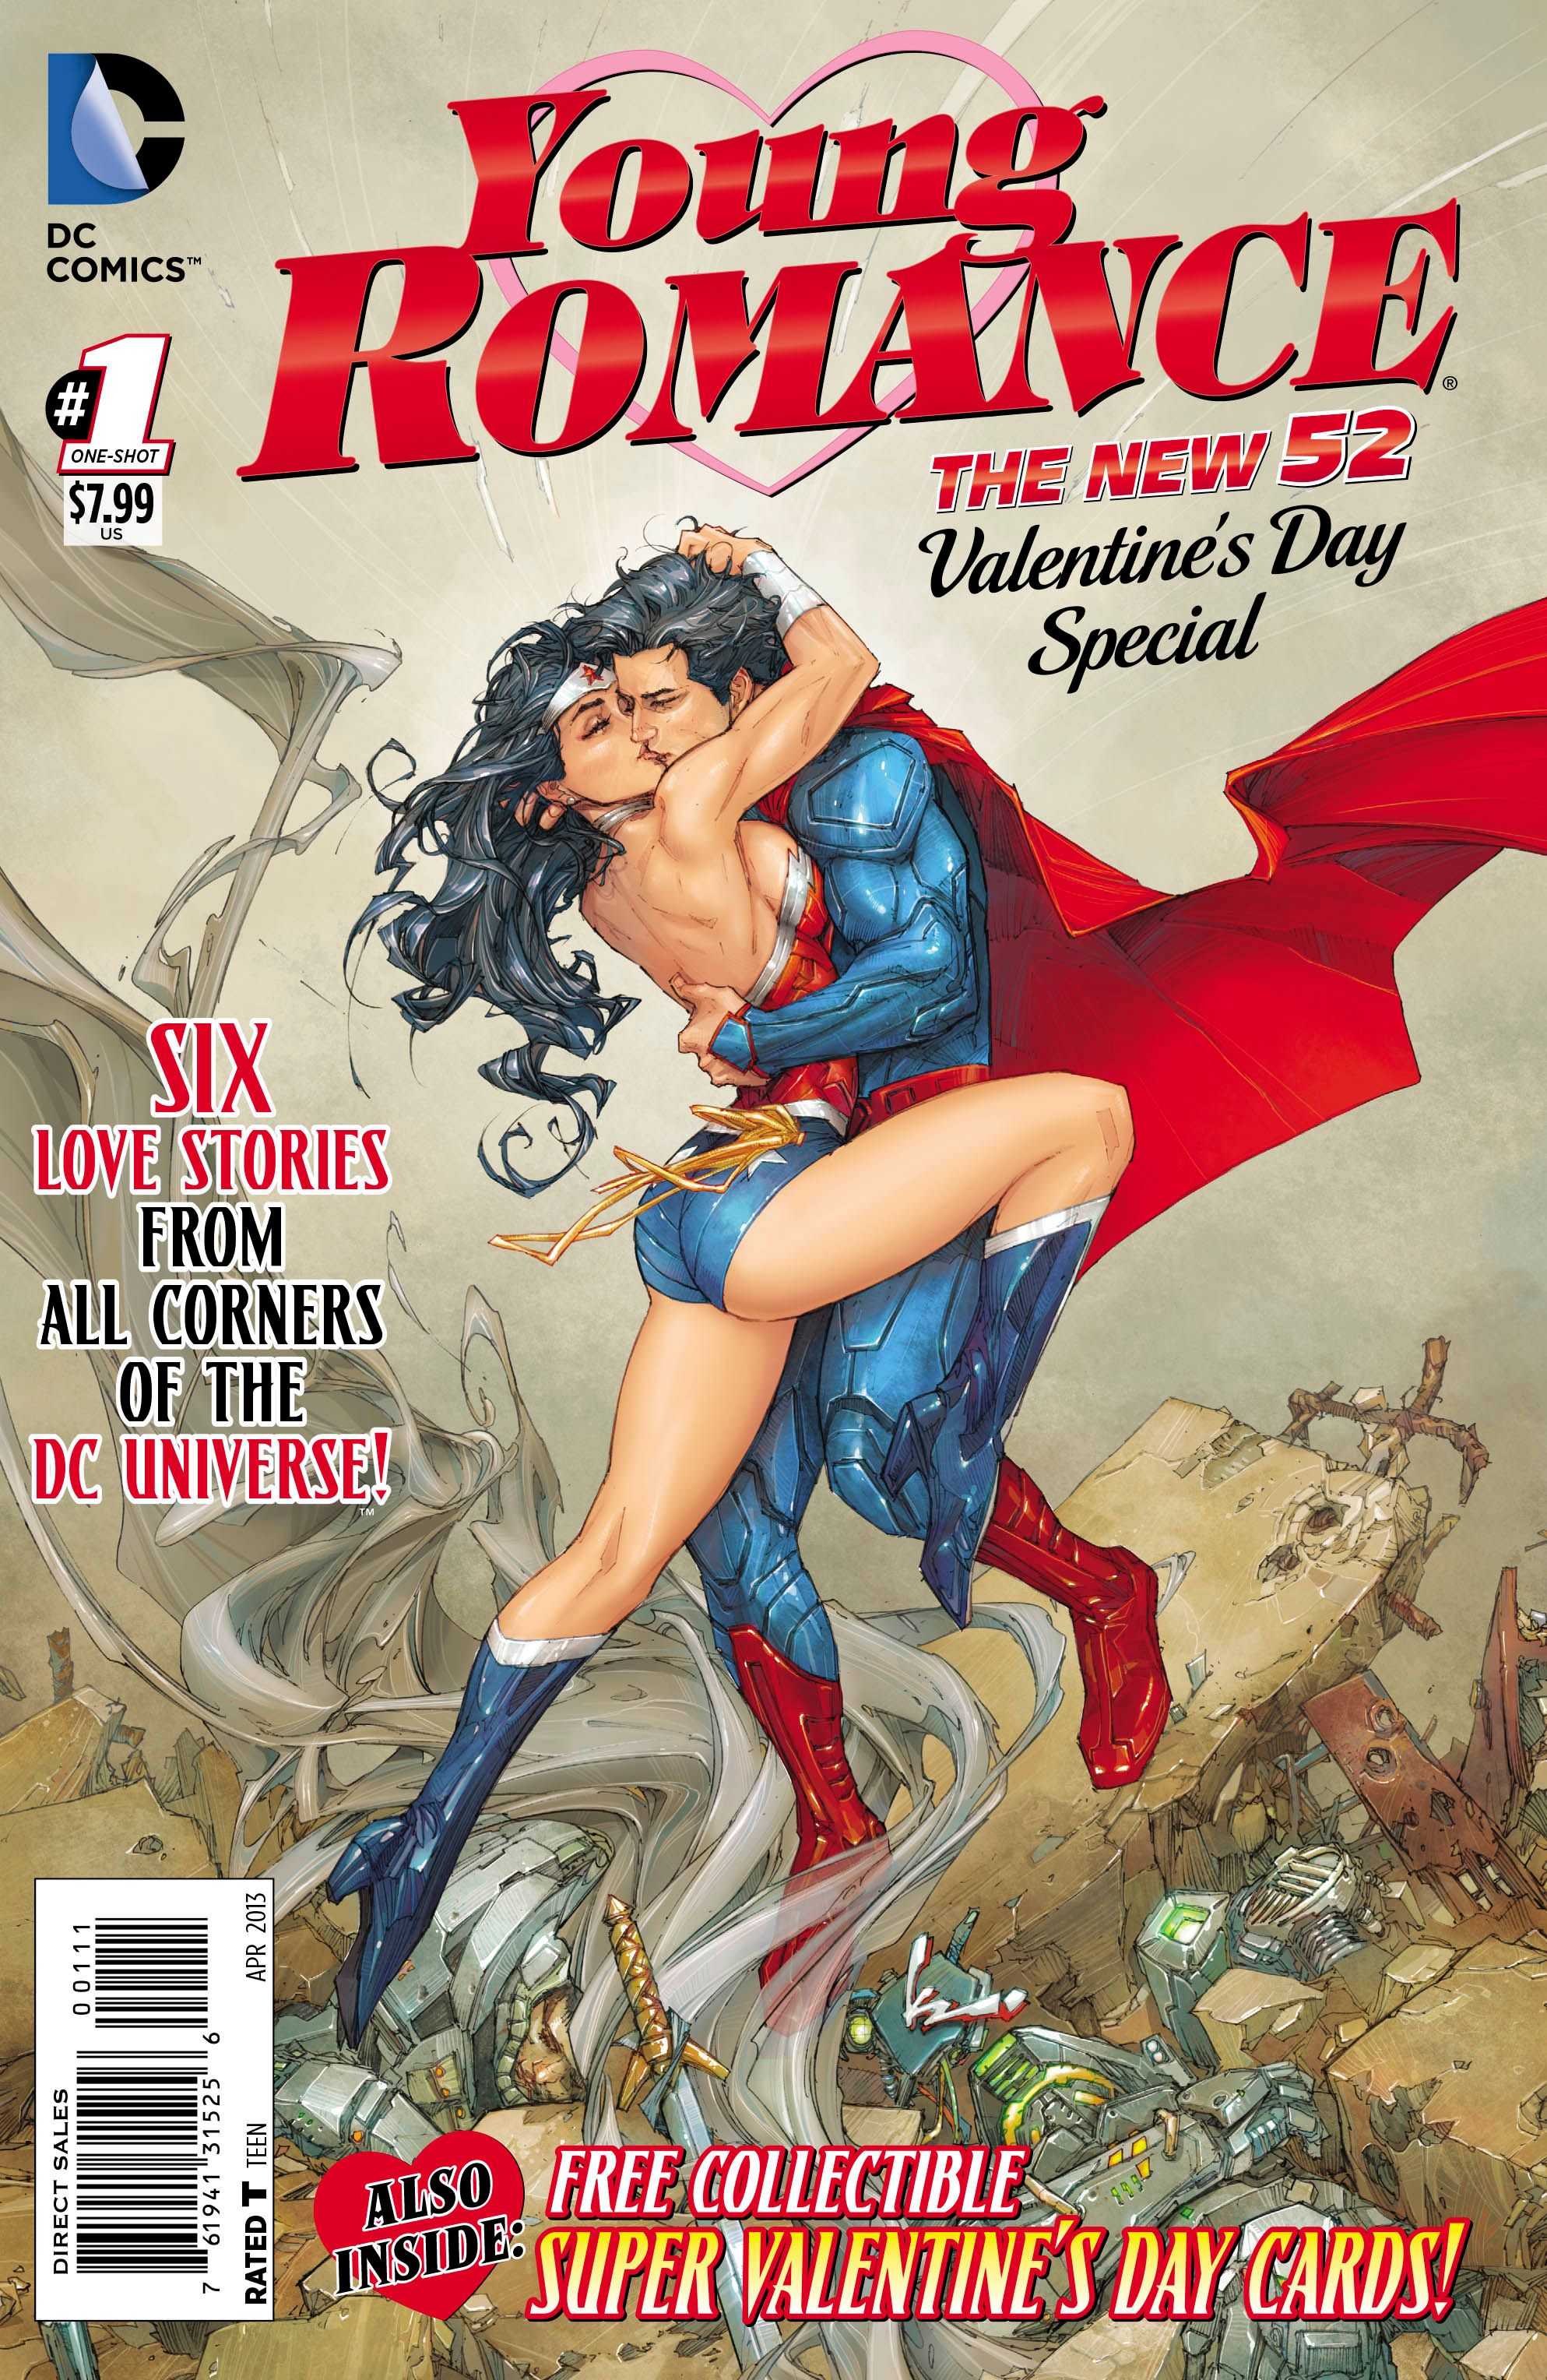 Image result for dc comics valentines day comic